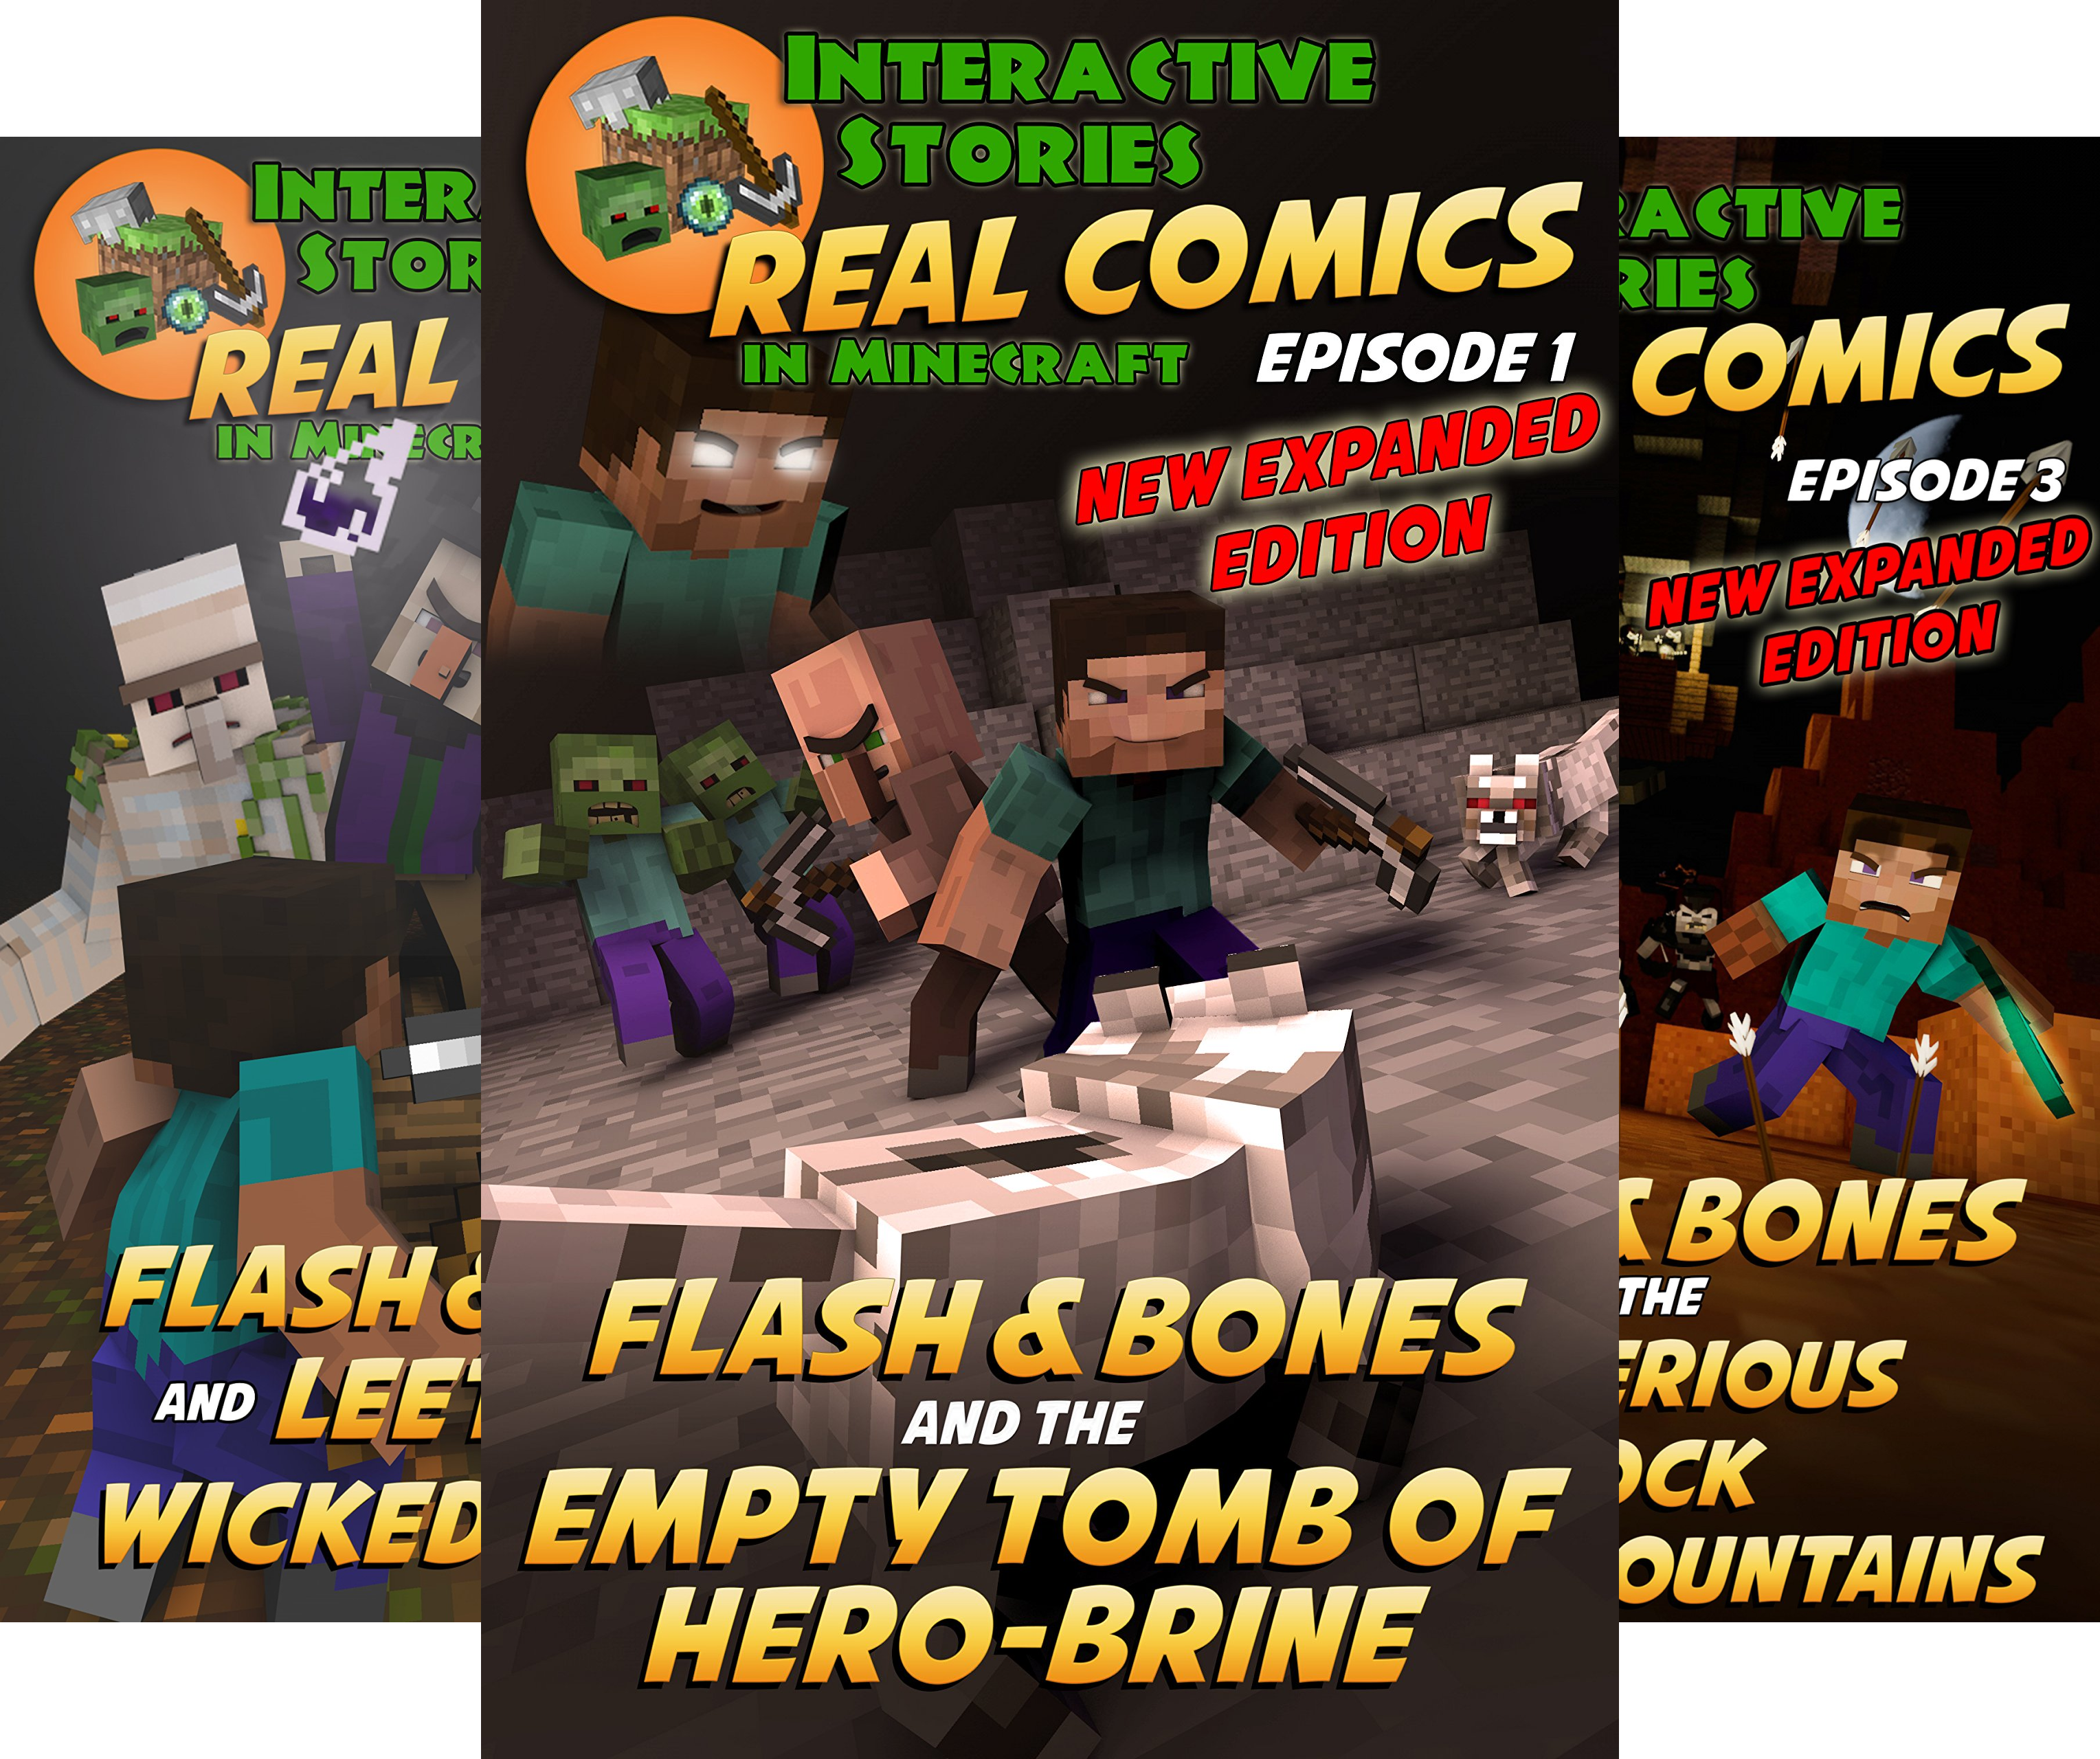 Real Comics in Minecraft - Flash and Bones (23 Book Series)